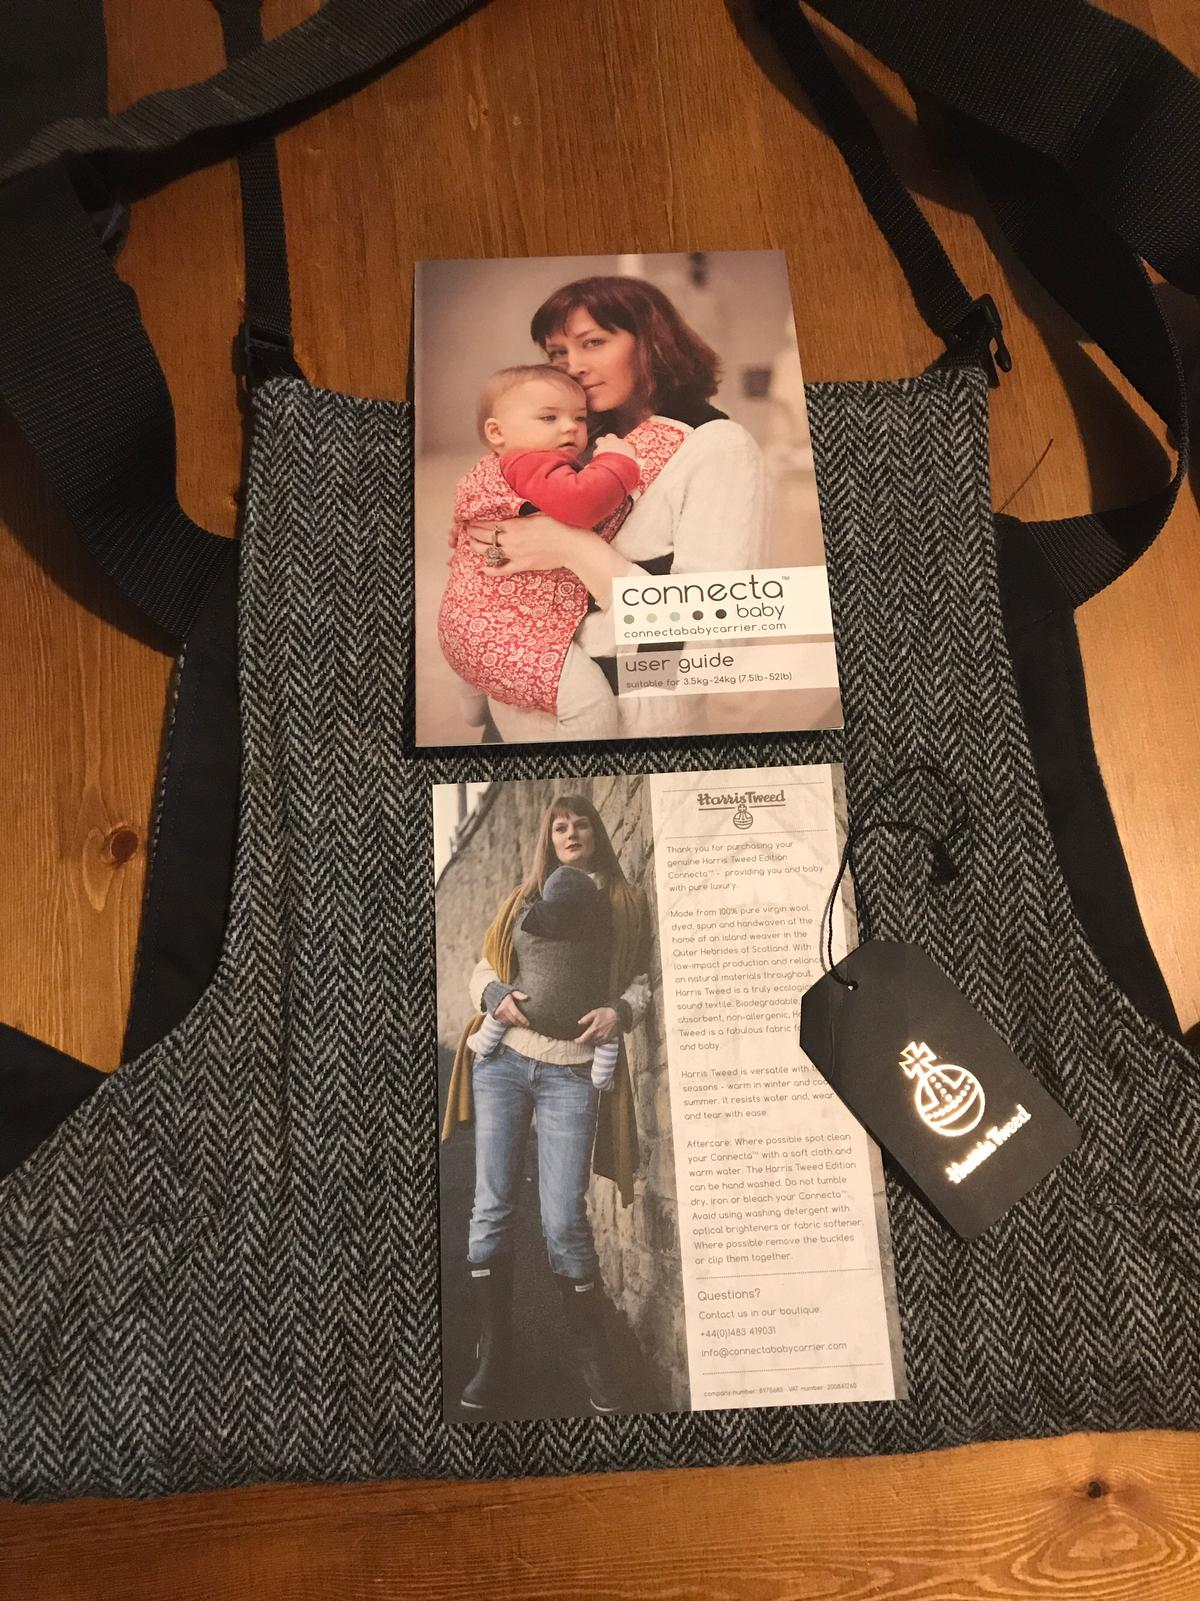 37505dbd1ec Harris Tweed Connecta baby carrier in NP24 New Tredegar for £80.00 ...